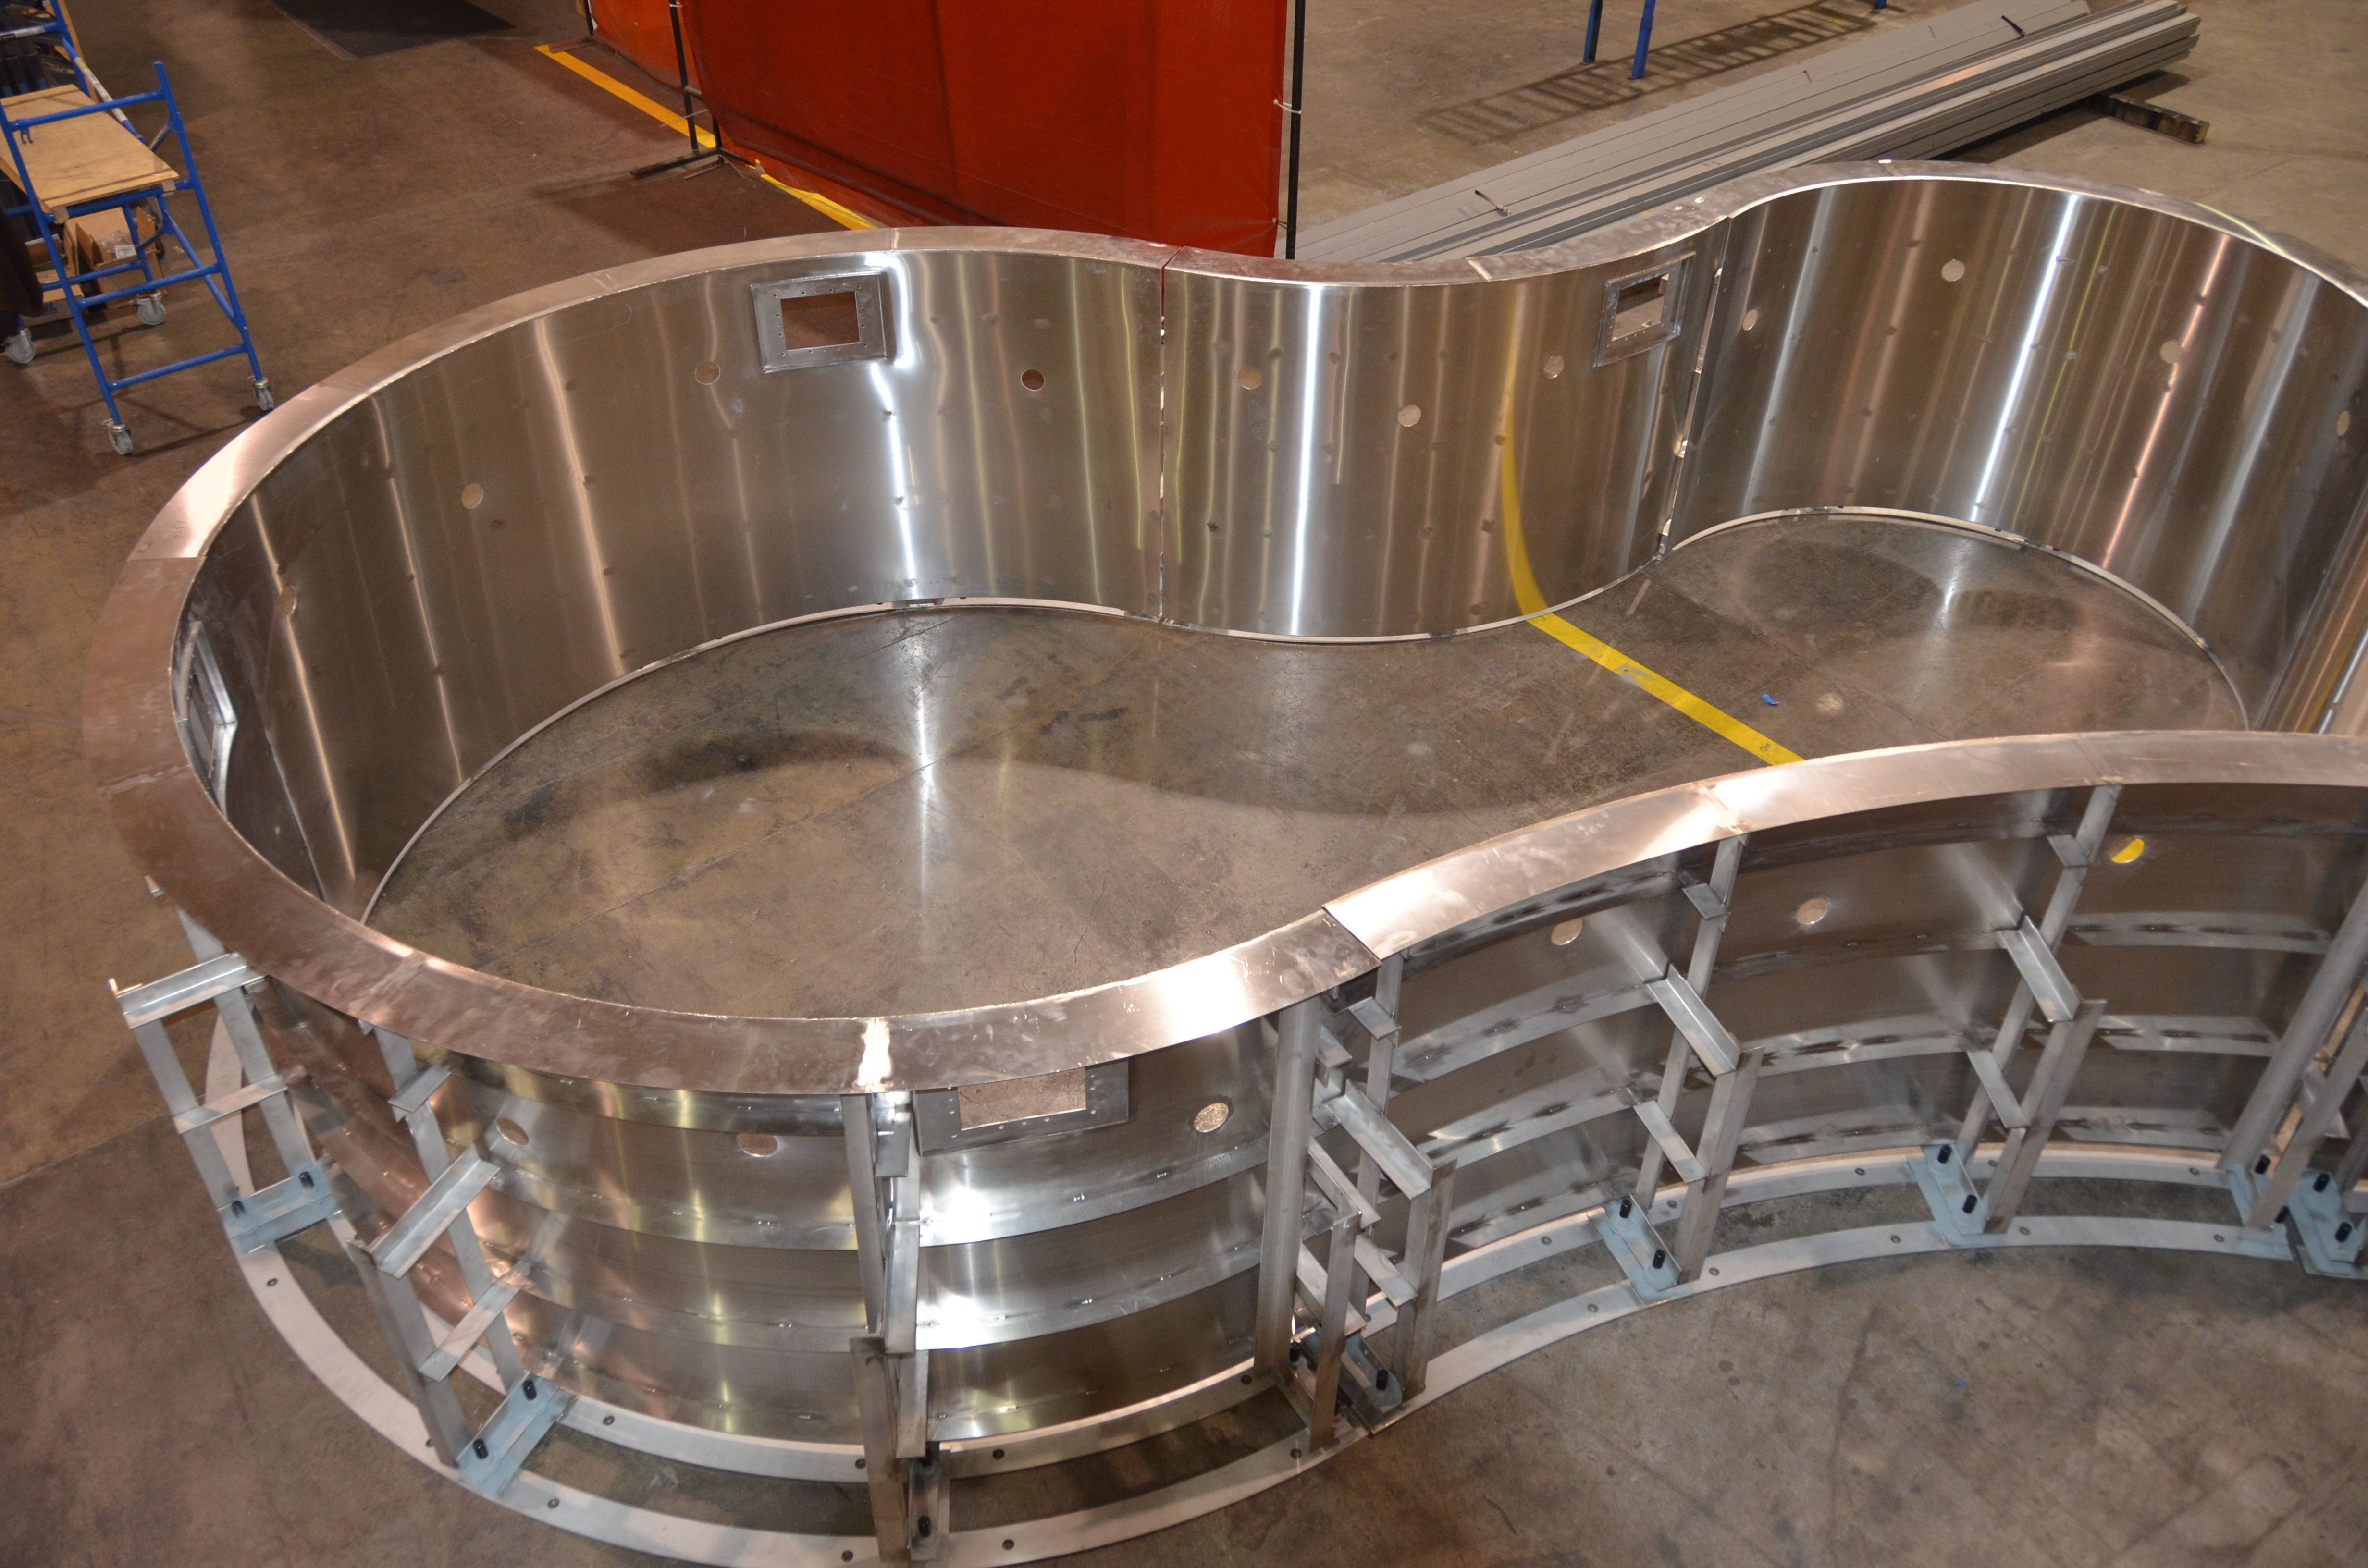 Ever wonder what a stainless steel spa looks like before it goes in the ground? Here's a behind the scenes look!